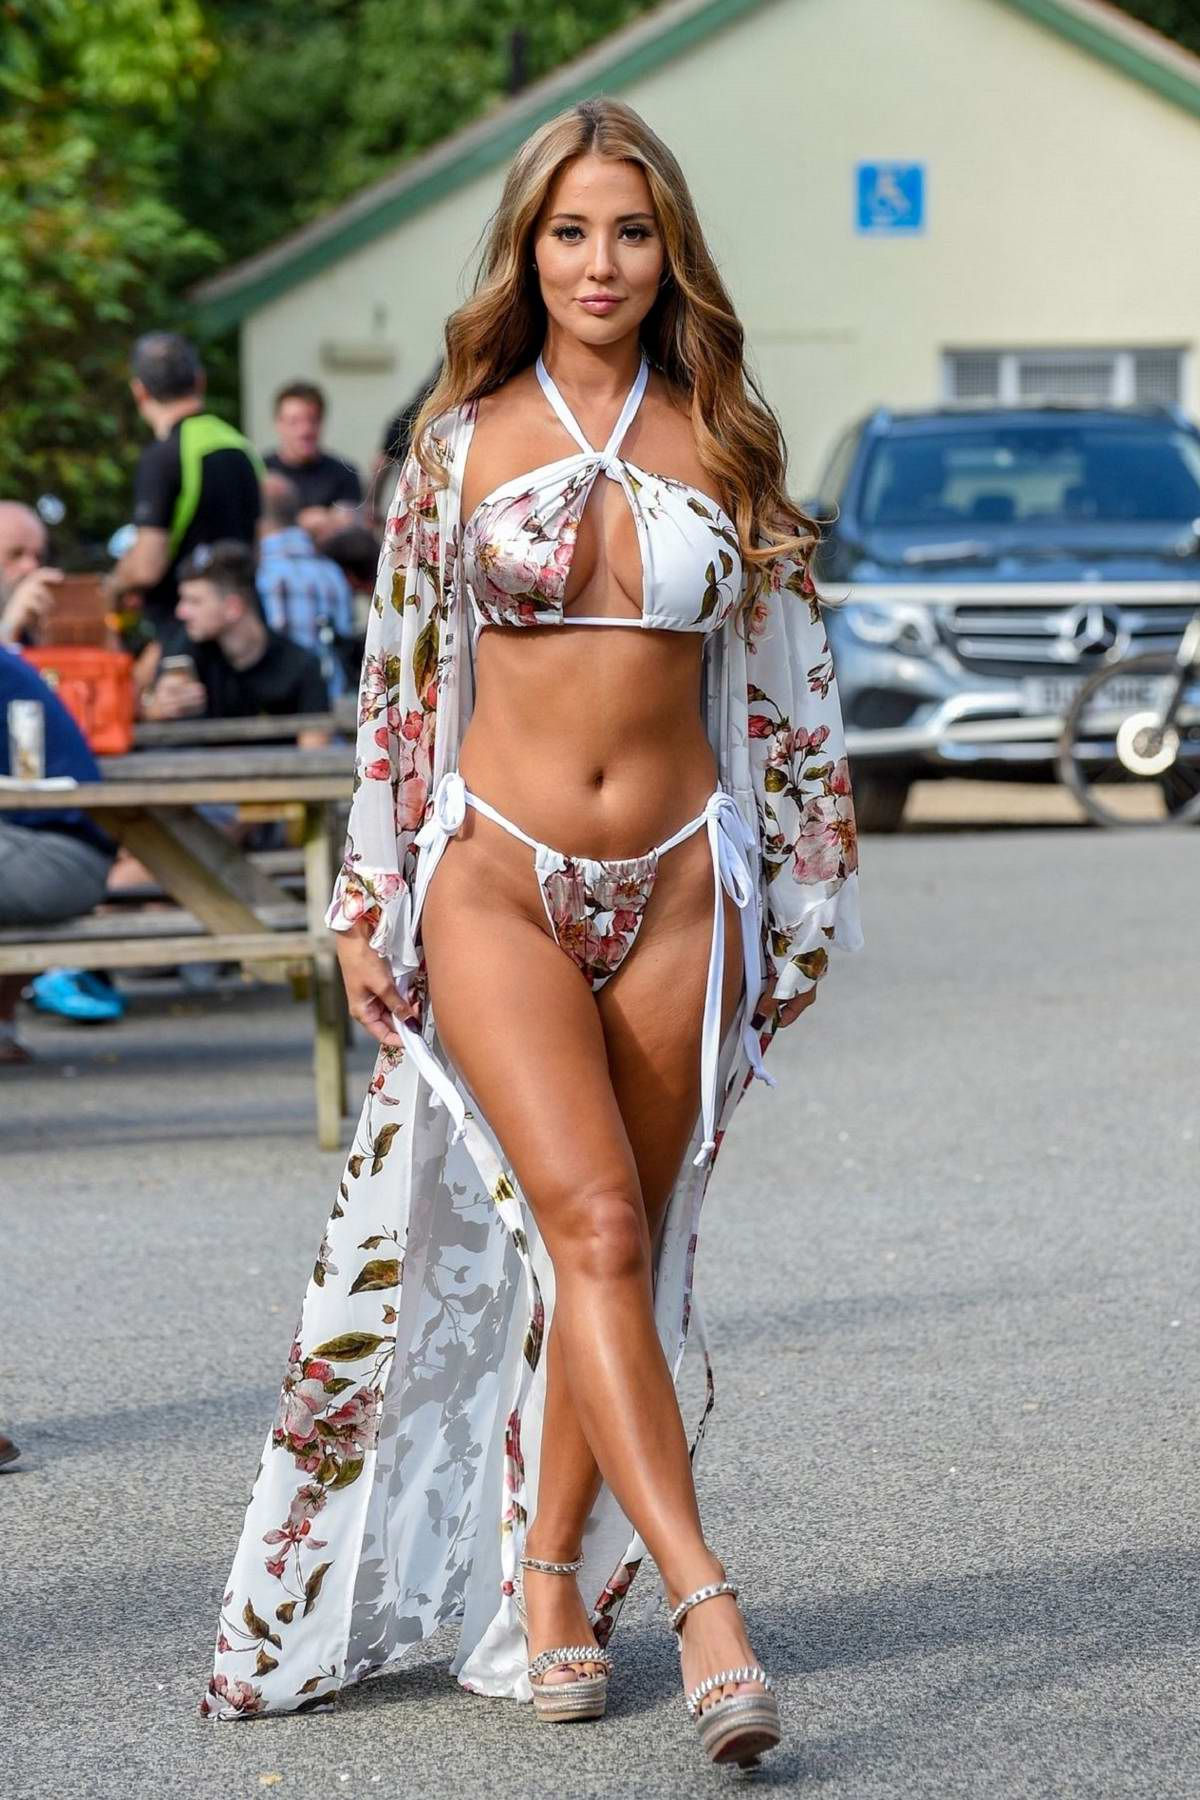 Yazmin Oukhellou seen wearing a floral print bikini at a pool party in Essex, UK